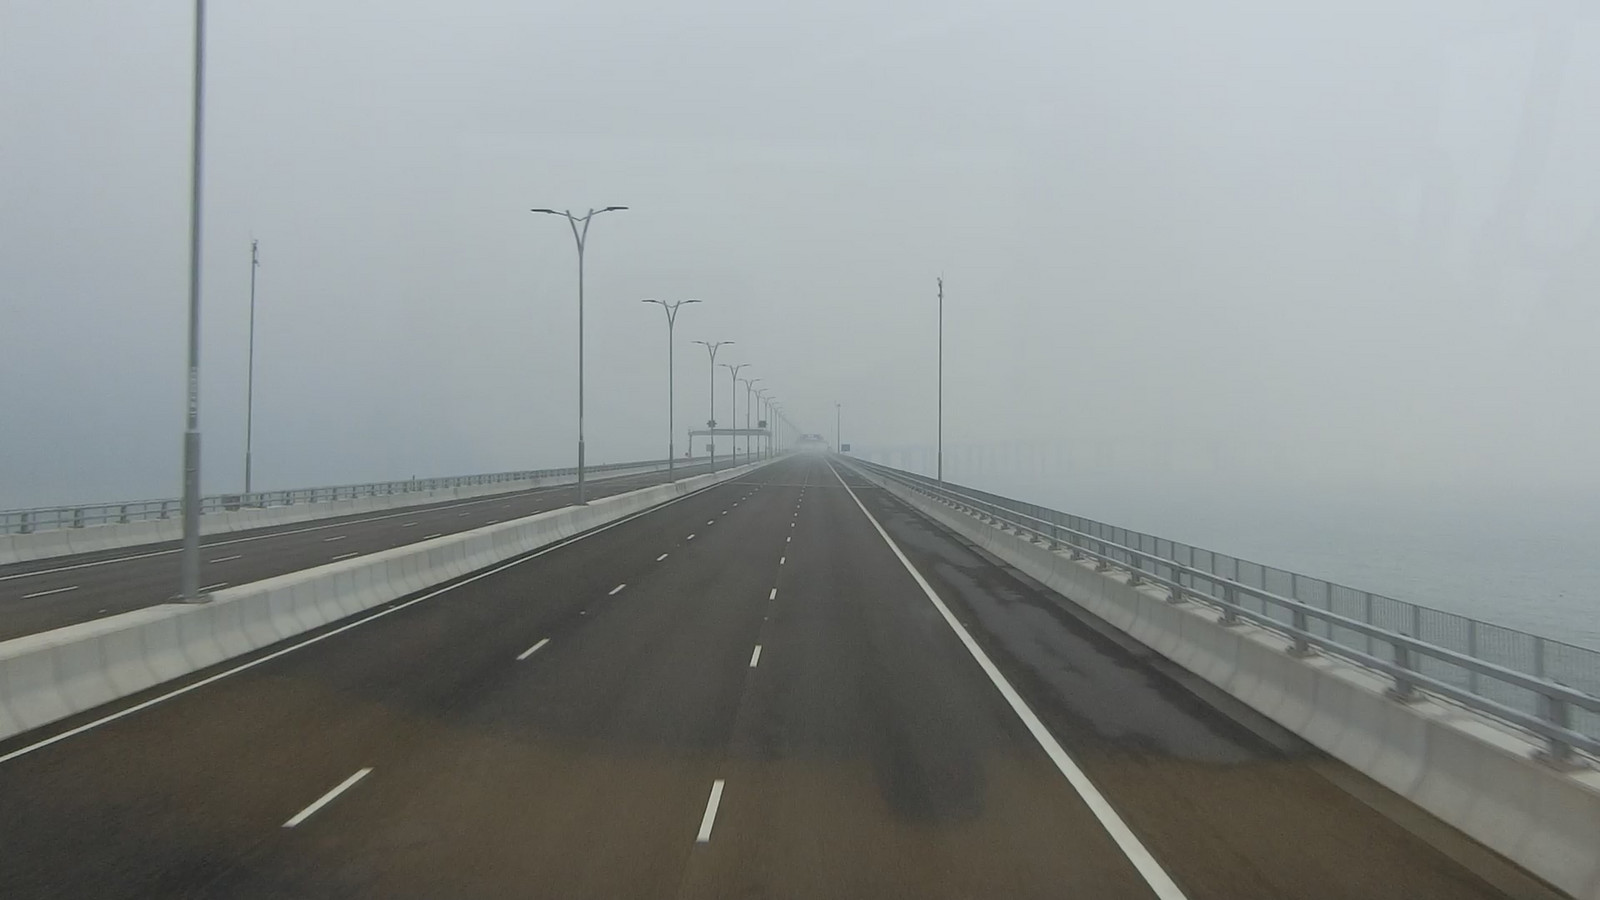 06hong_kongzhuhaimacao_bridge